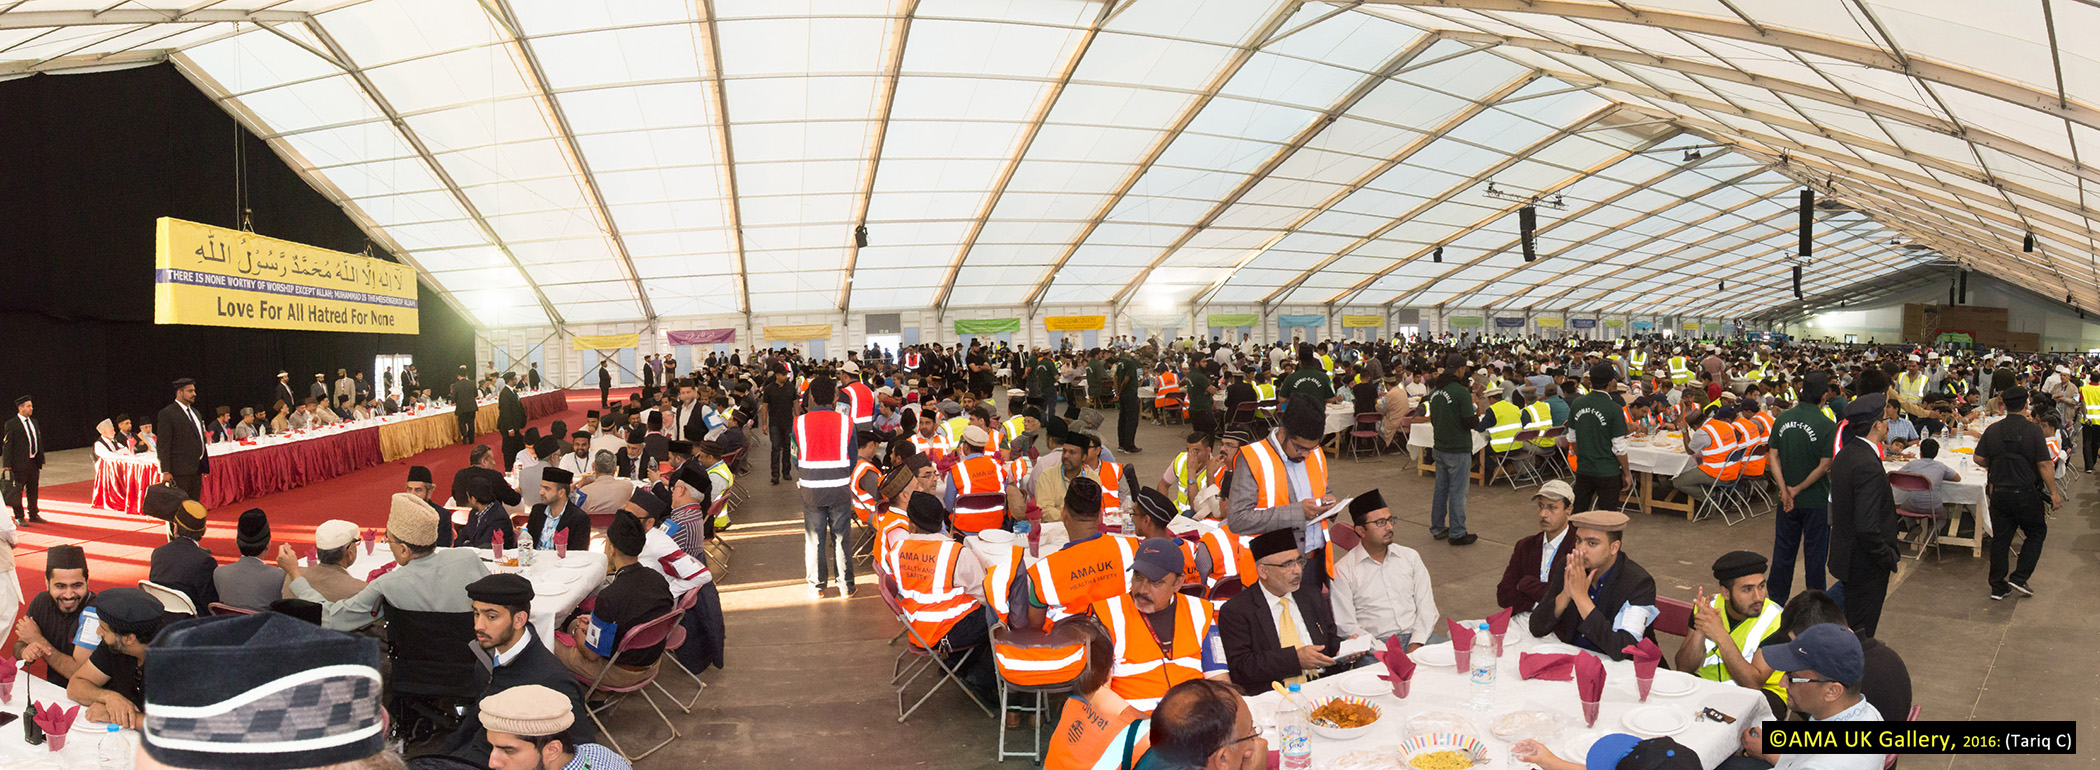 All the workers and those who attended were able to sit and enjoy their meal in the company of His Holiness.